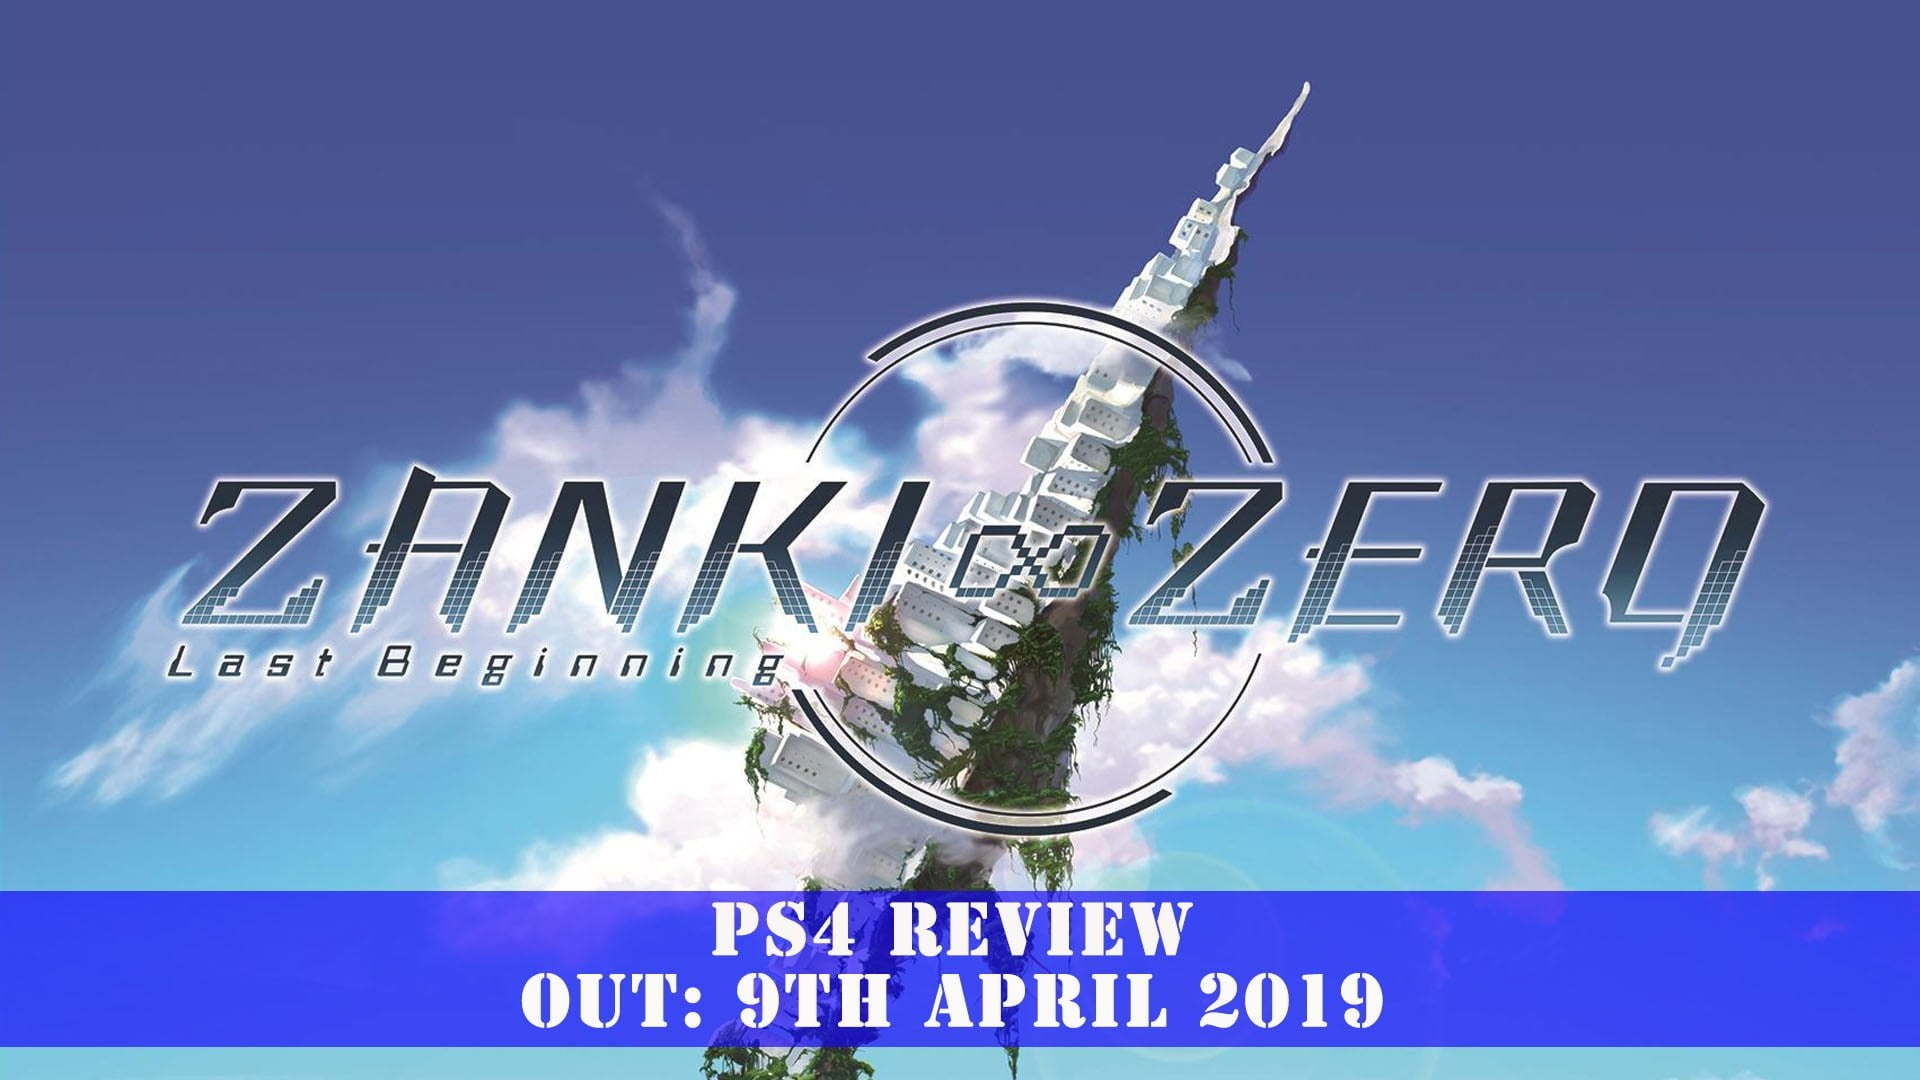 Zanki Zero: Last Beginning (PS4) Review